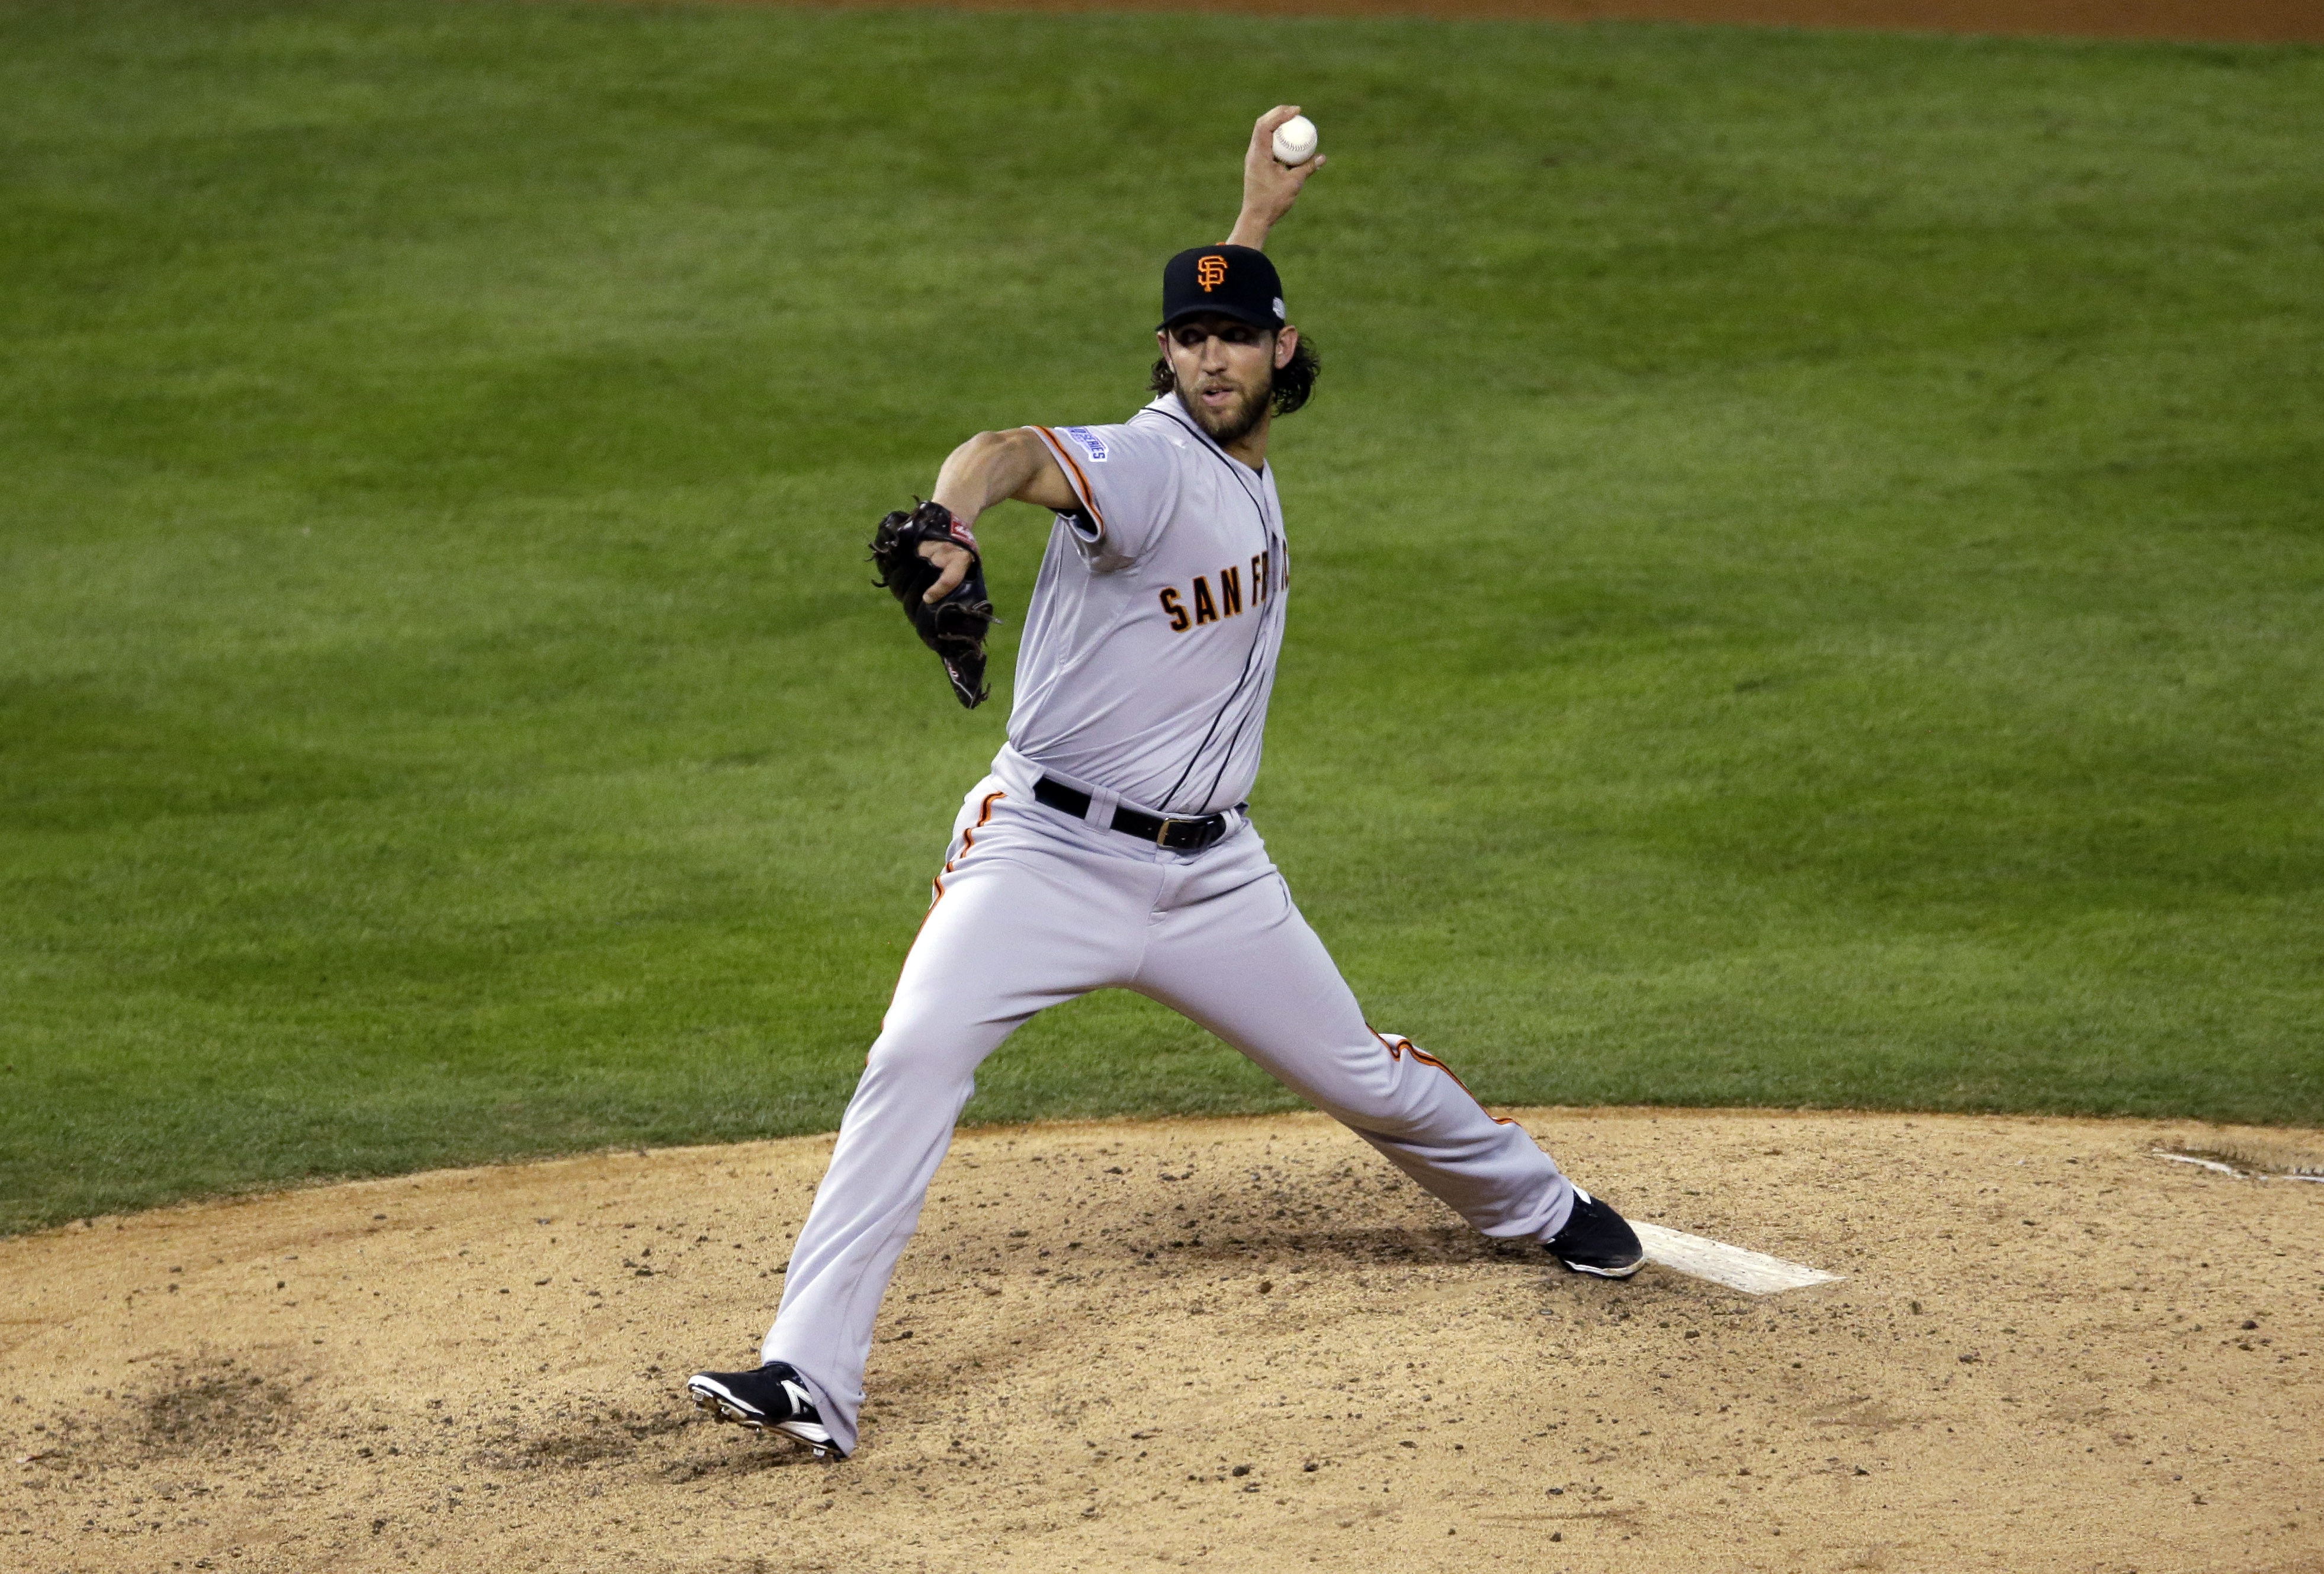 Giants pitcher Madison Bumgarner's five-inning relief appearance to win Game Seven was one of the greatest performances in baseball history.